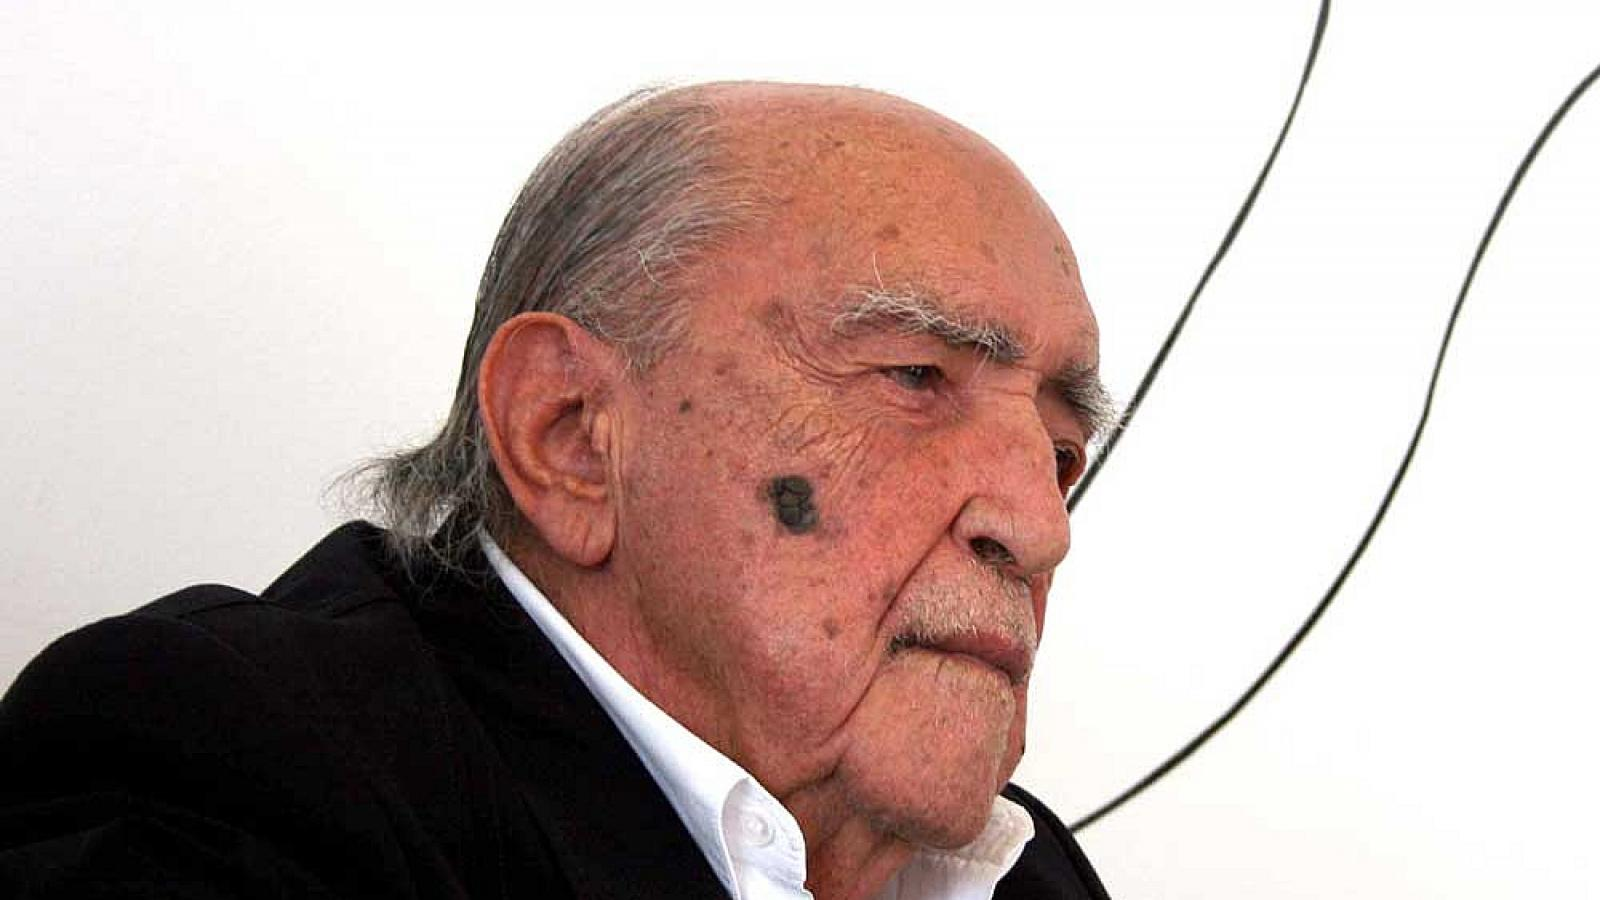 Oscar Niemeyer, The Architect